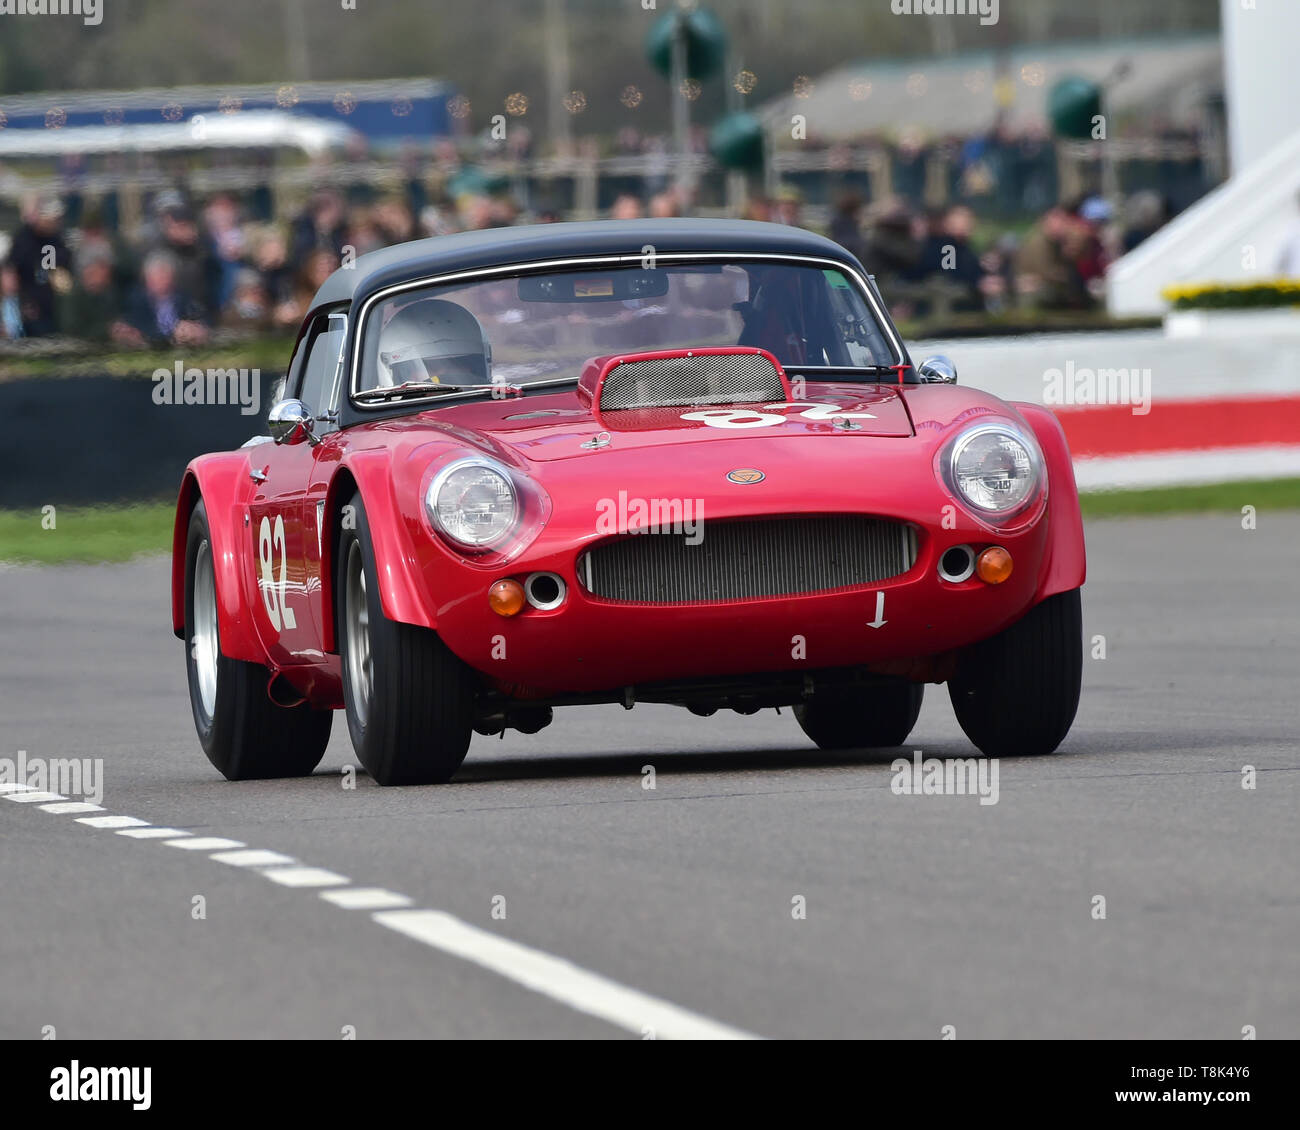 James Guess, James Hilliard, Ginetta G10, Graham Hill Trophy, Closed cockpit GT cars, Prototype cars, Spirit of the RAC TT Races 1960-1964, 77th Membe - Stock Image